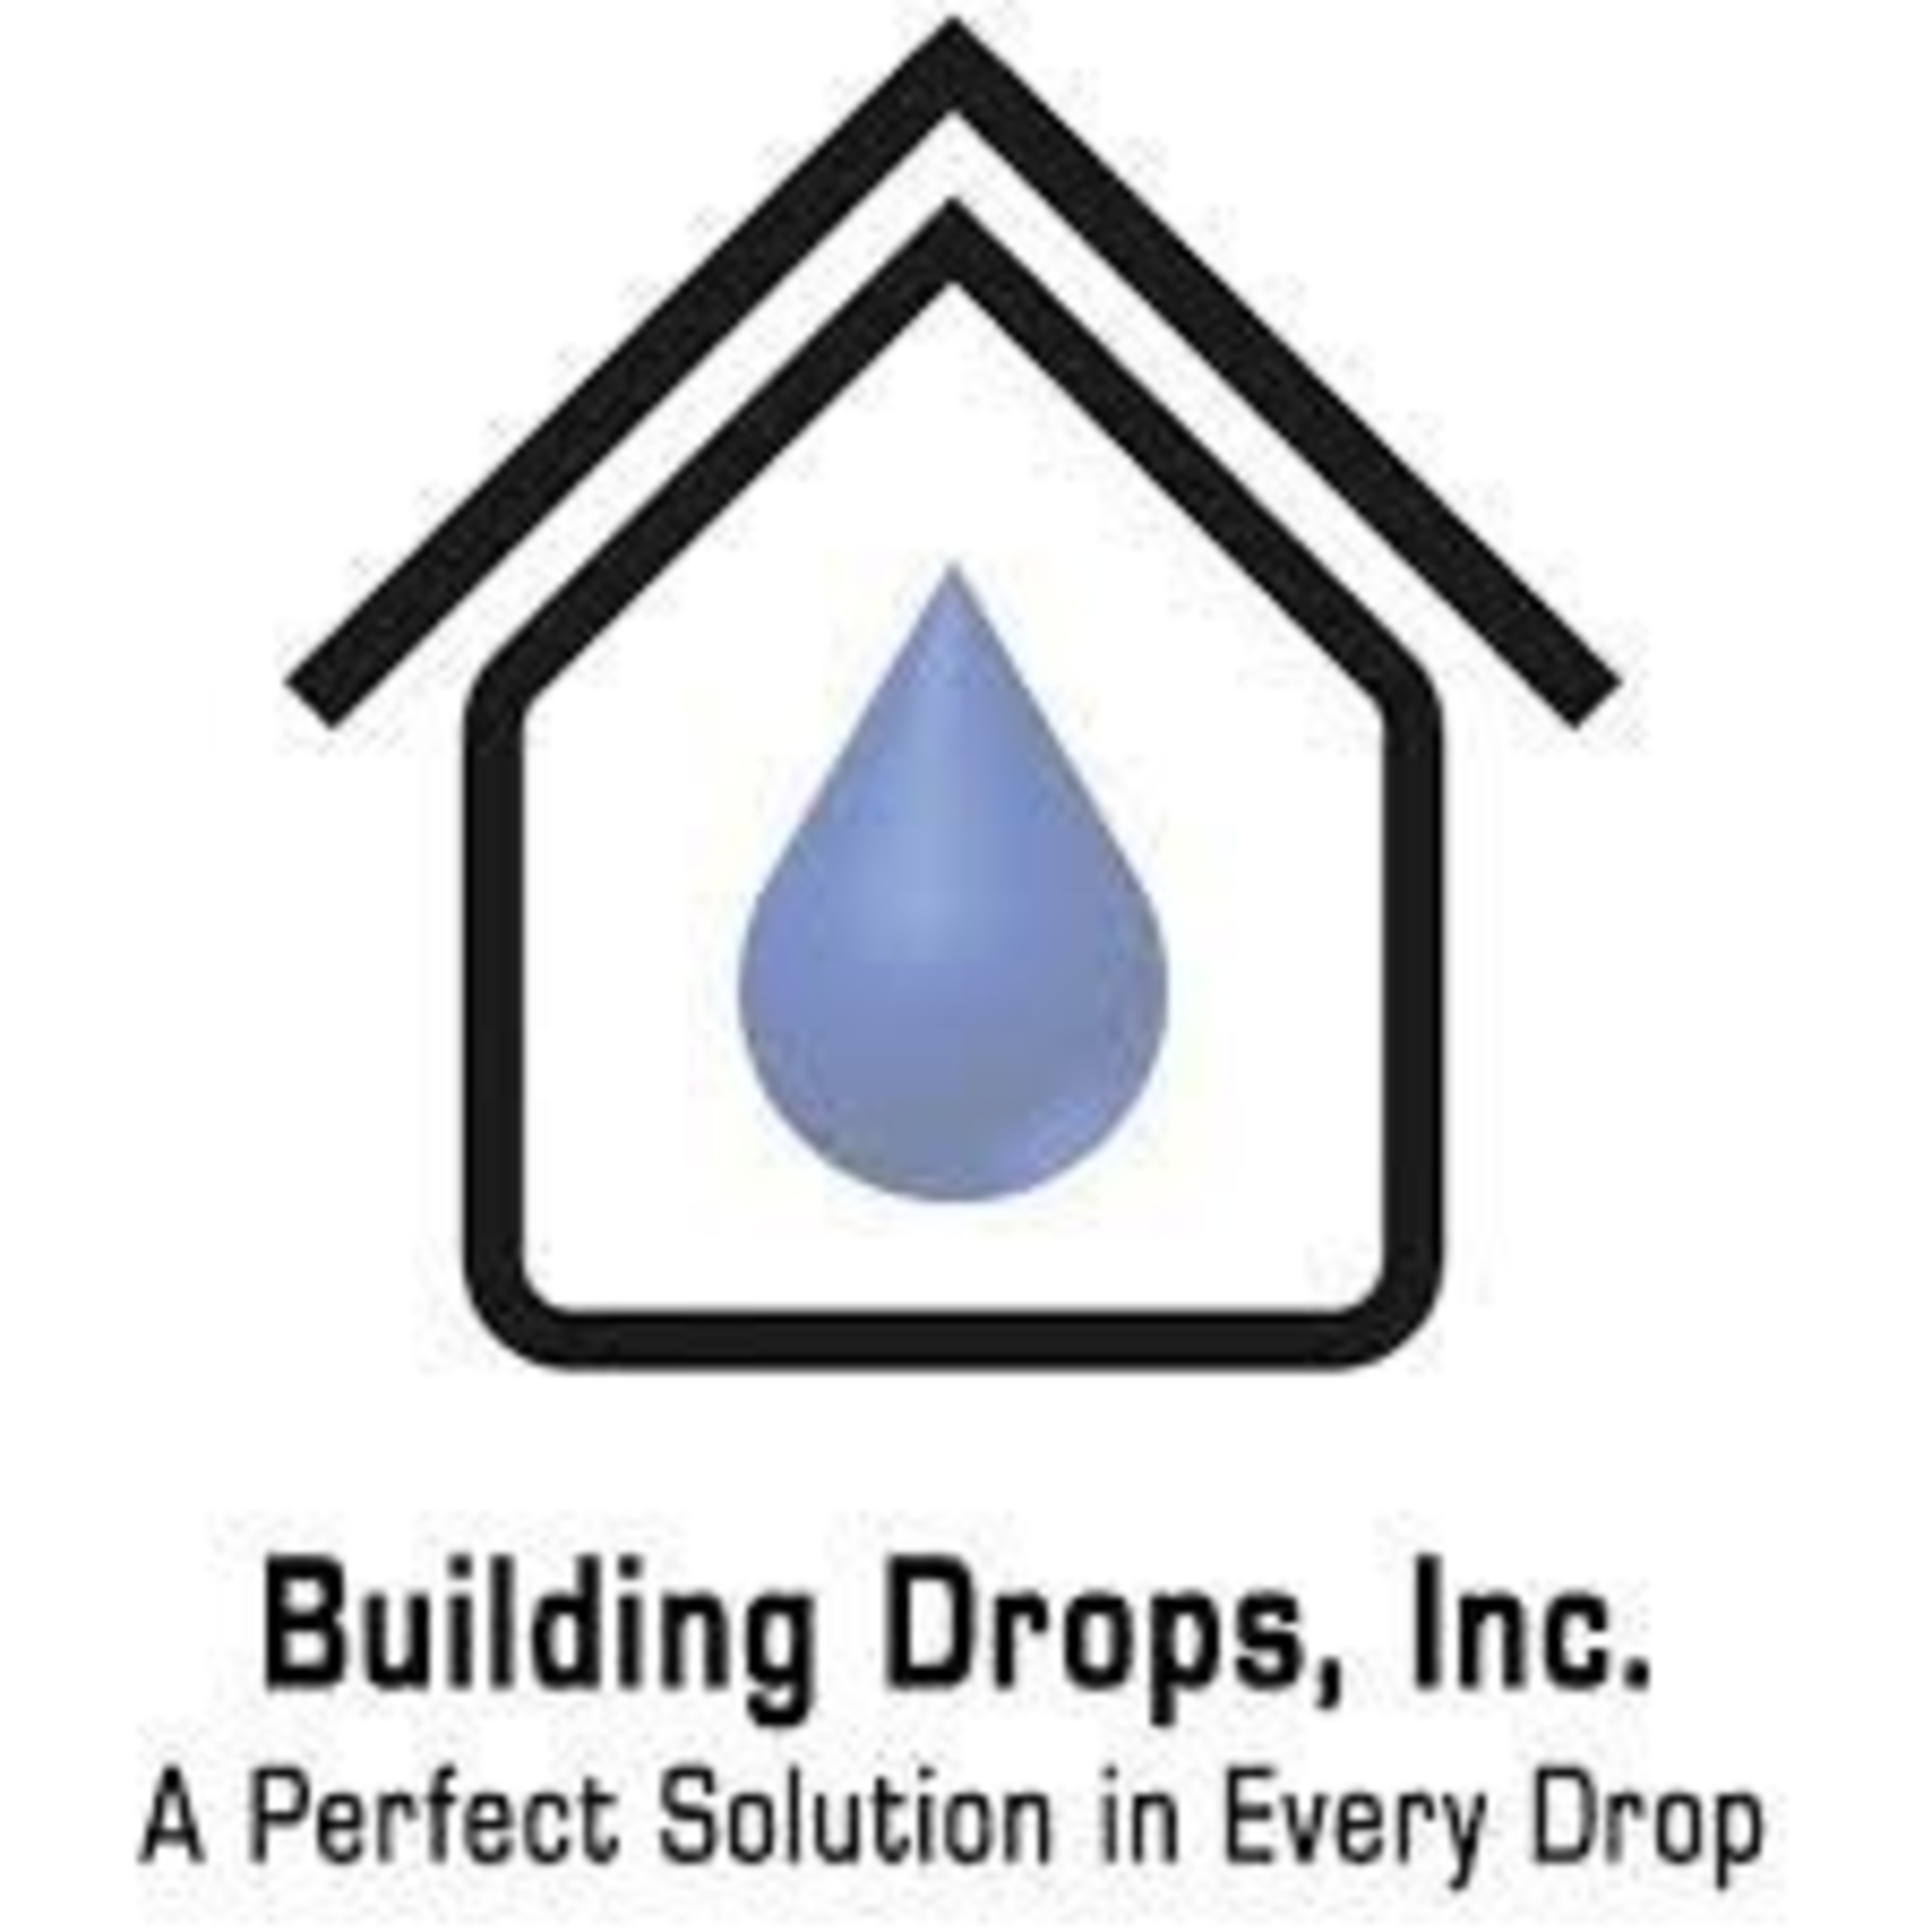 Building Drops Welcomes Jay Hadida as Director of Business Development